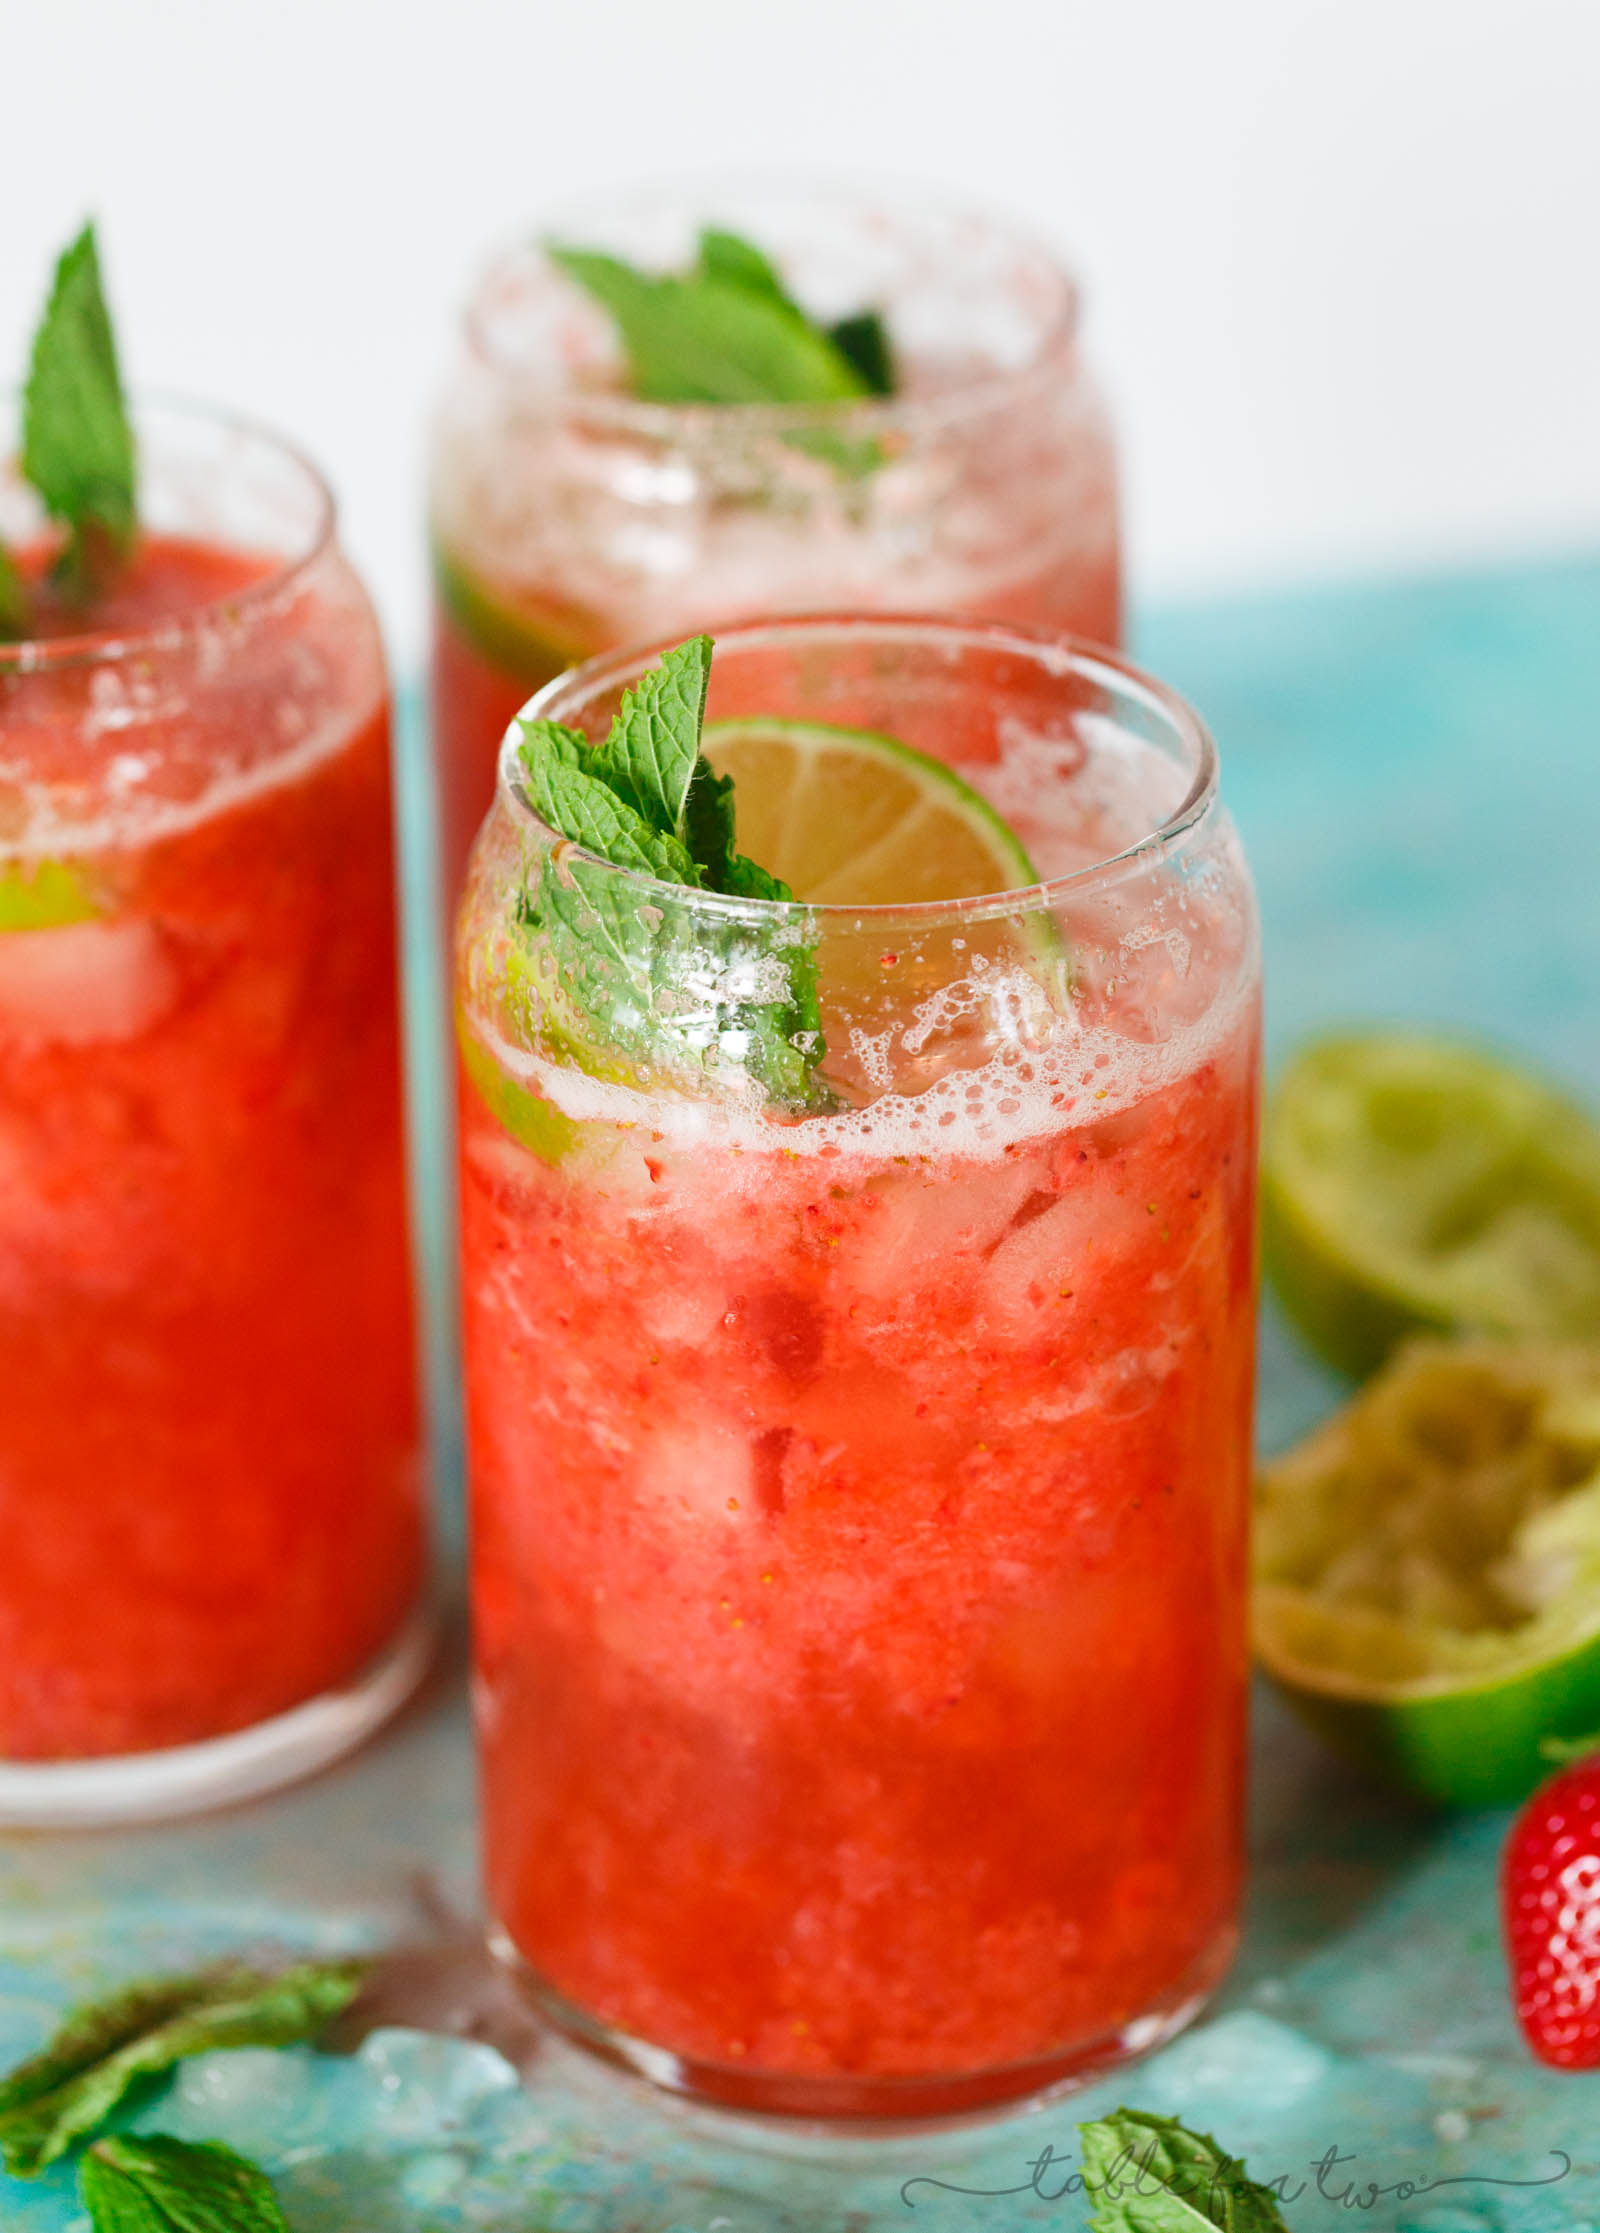 This refreshing strawberry rosé mint limeade is made with fresh seasonal ingredients! You will love sipping on this at your next outdoor party or get-together! Fresh strawberries are key and the refreshing mint and tangy lime juice rounds out the flavors of this drink perfectly! Serve with or without alcohol!